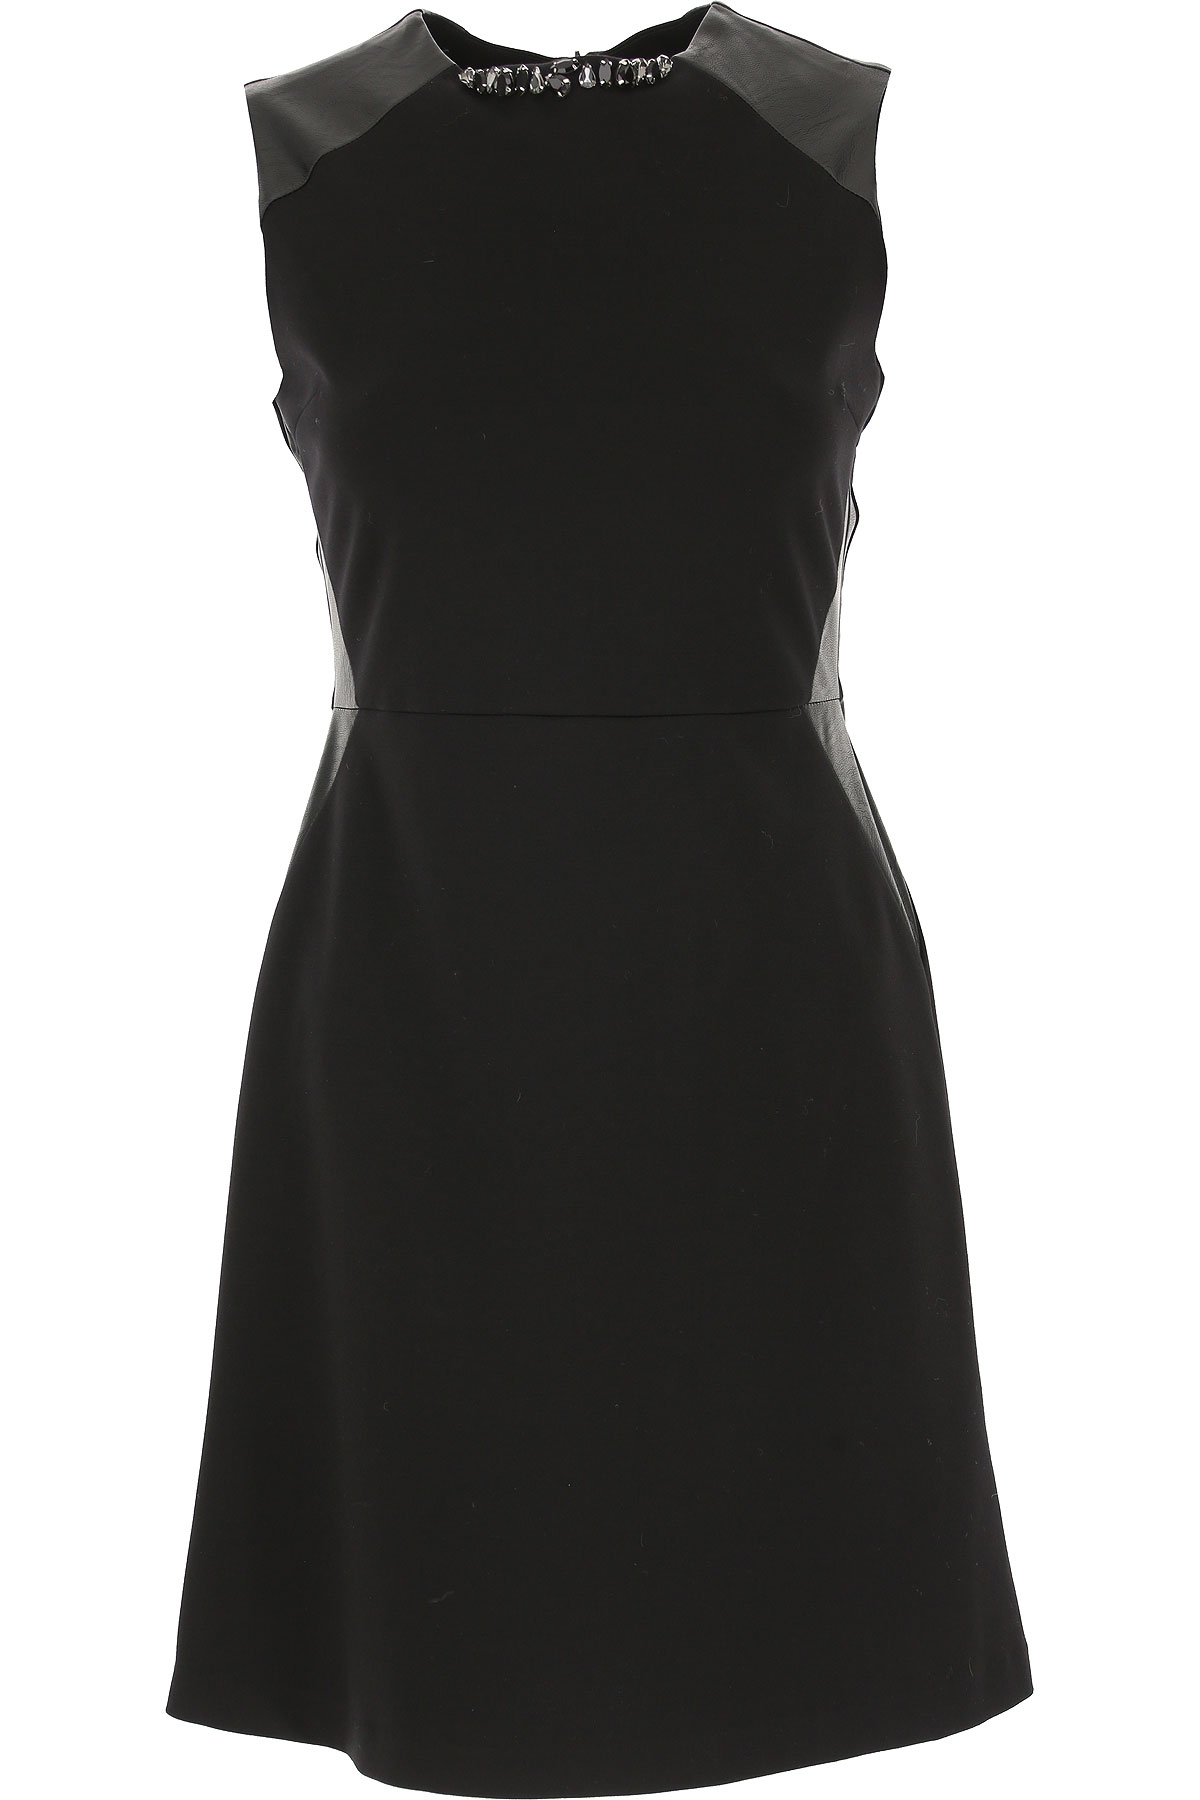 Image of Blugirl Dress for Women, Evening Cocktail Party, Black, Viscose, 2017, 10 4 6 8